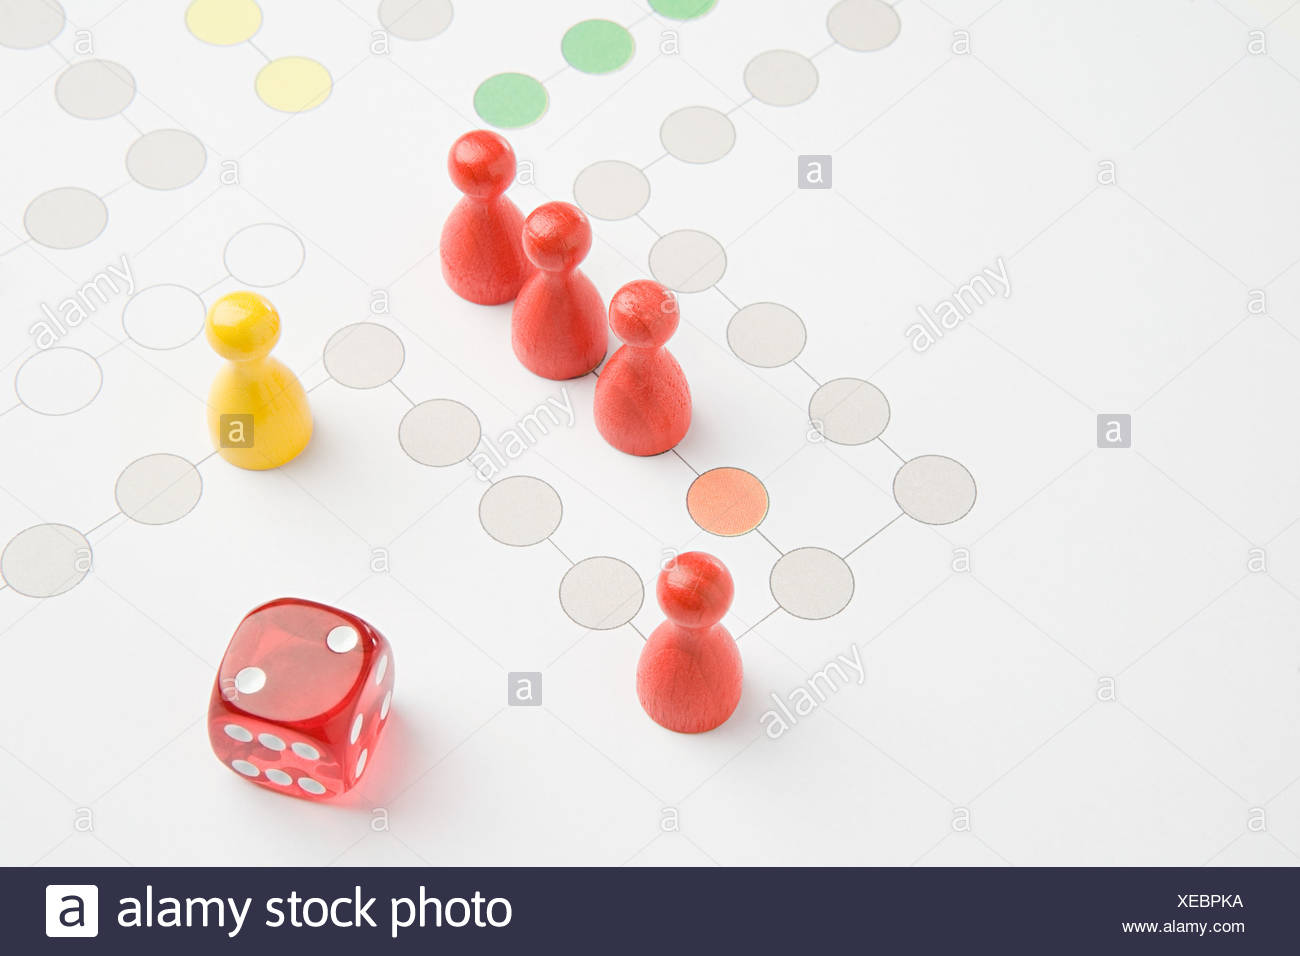 A game Stock Photo